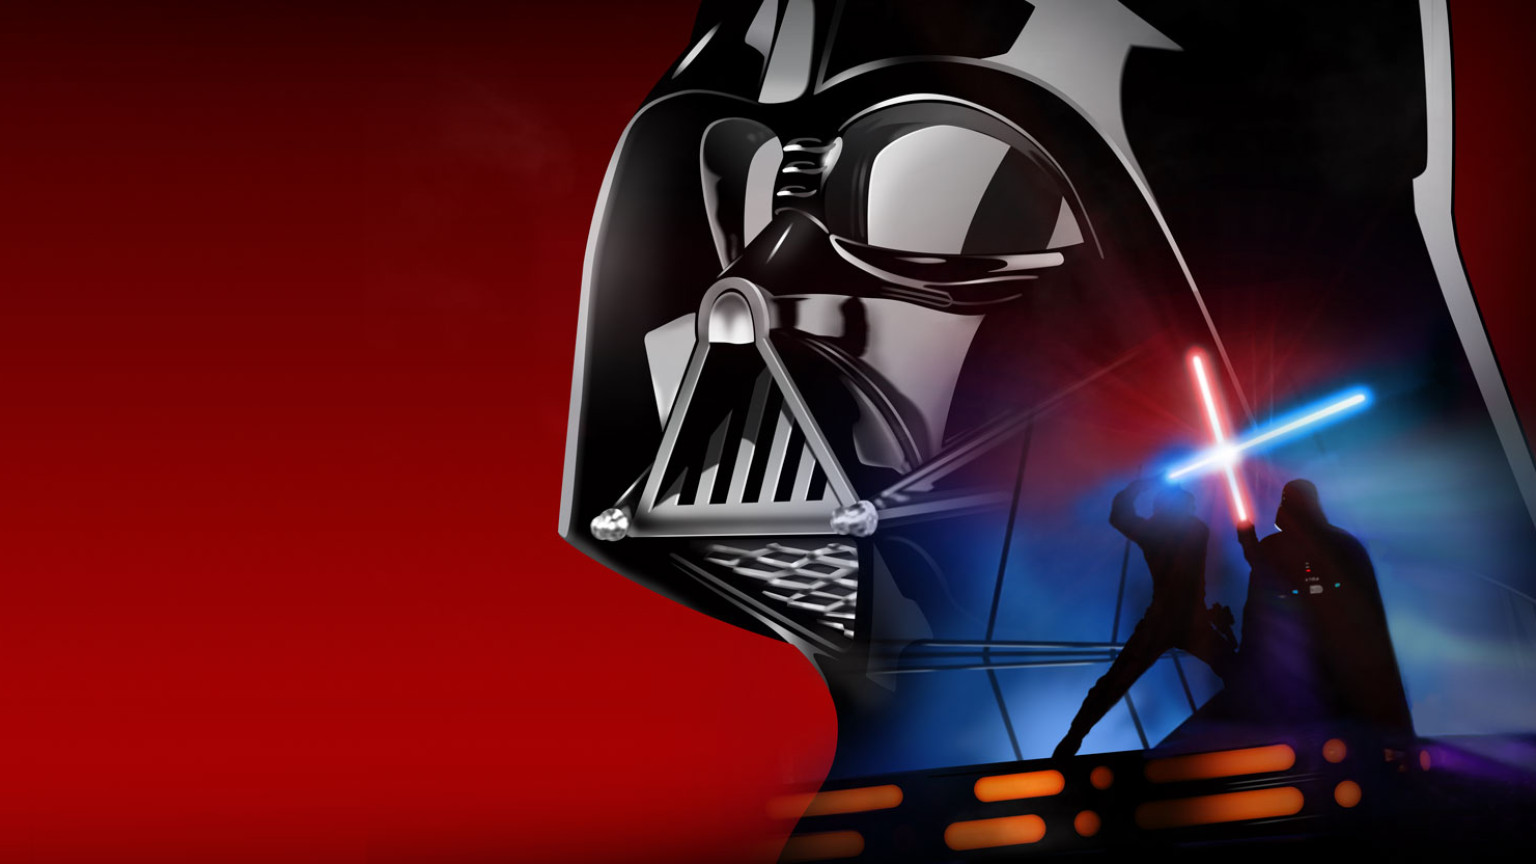 Awakening the Force in my son was easier with the Harmy